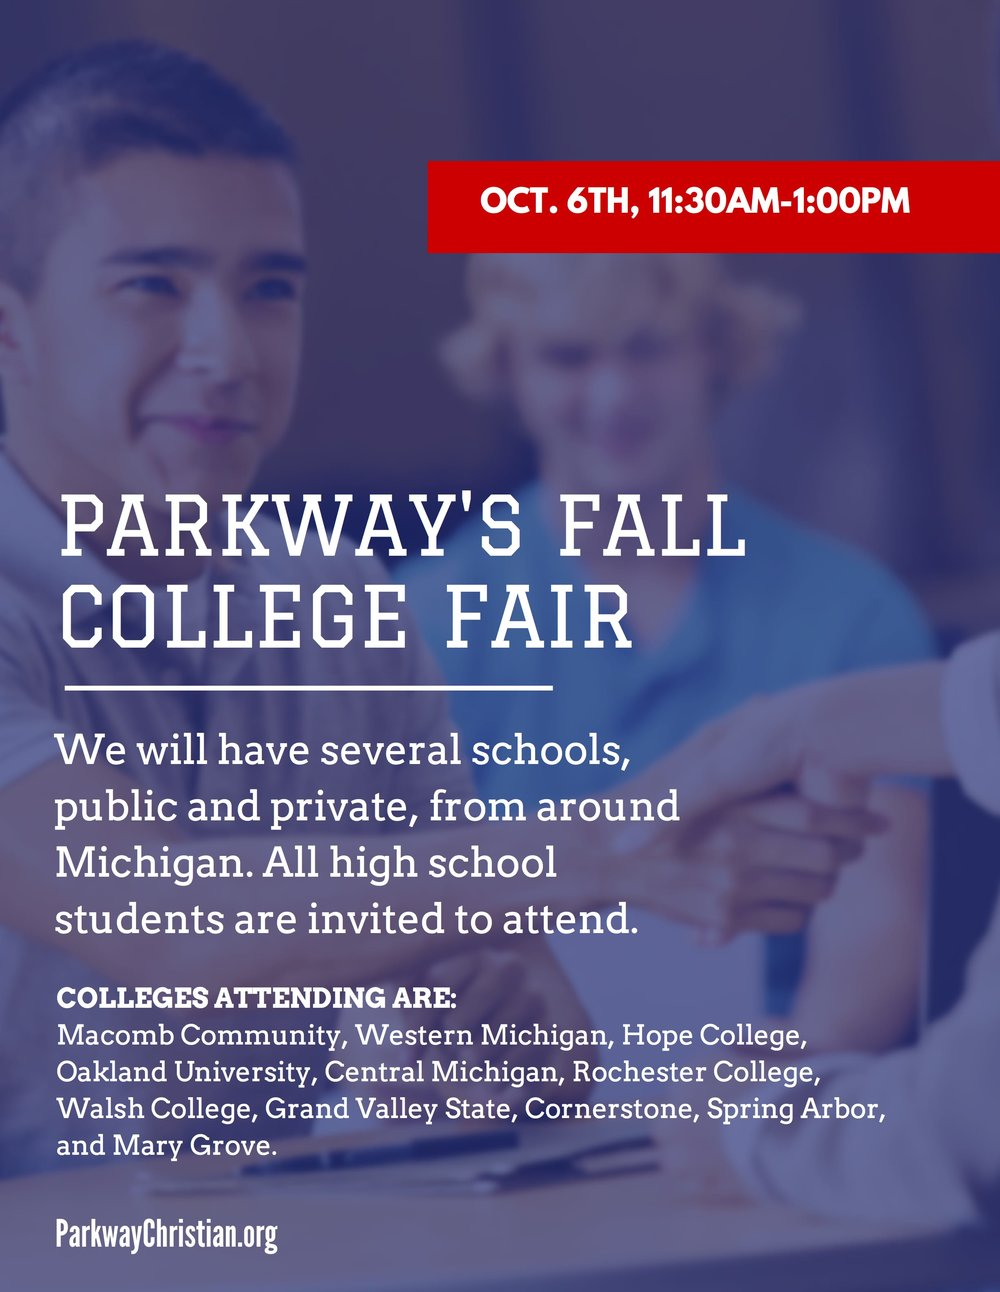 Parkway's Fall College Fair